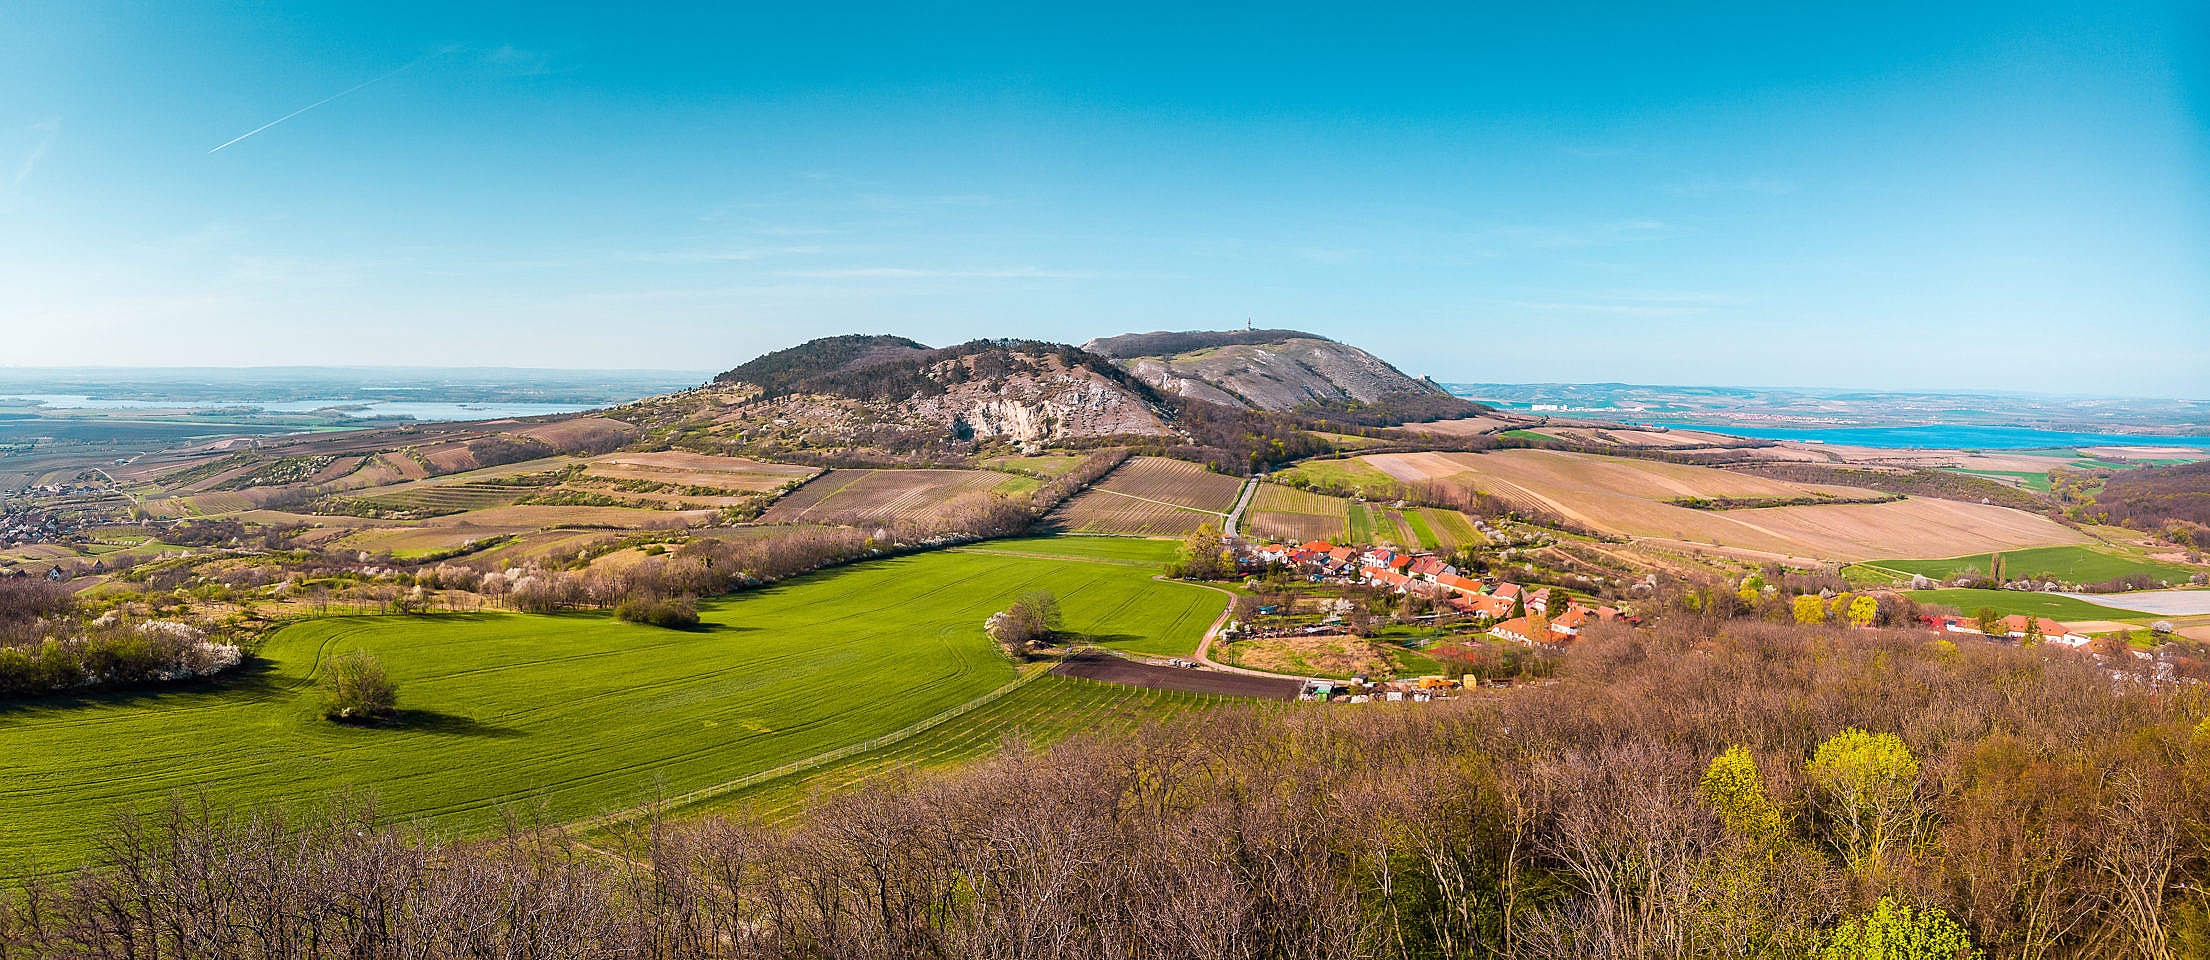 South Moravia Pálava Hills Panorama Free Stock Photo